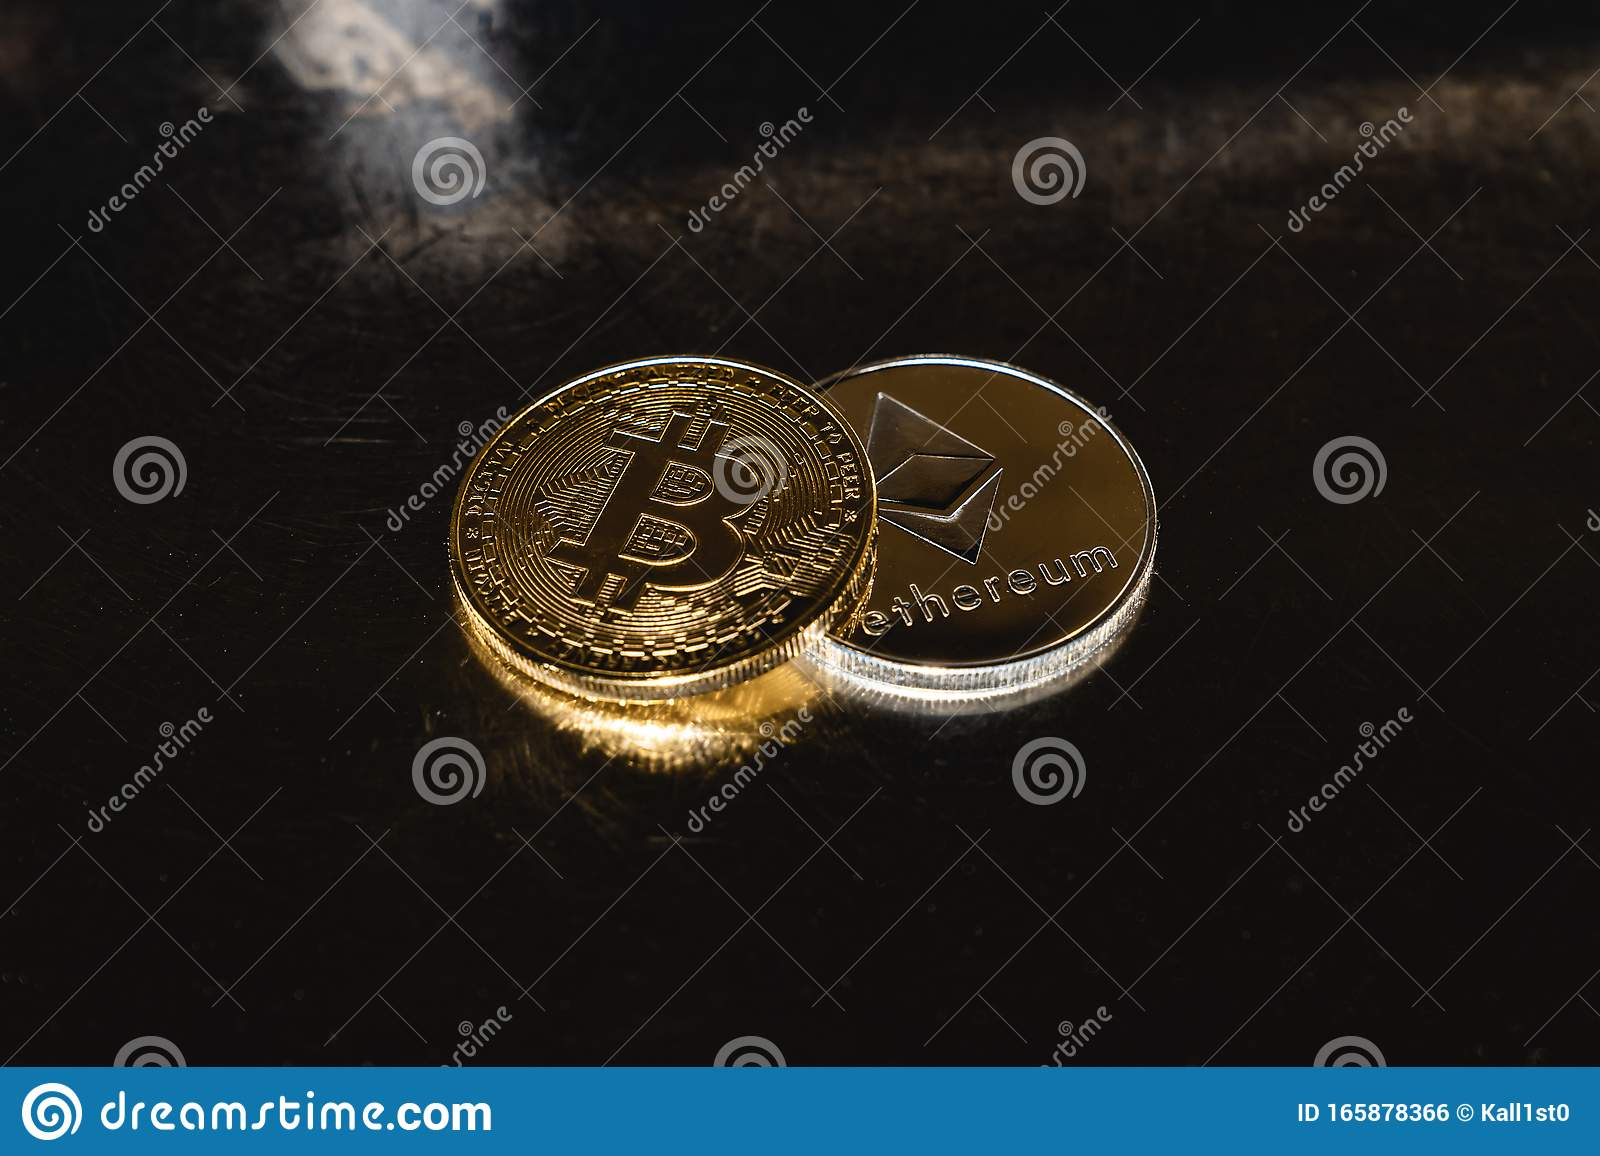 rise cryptocurrency coin